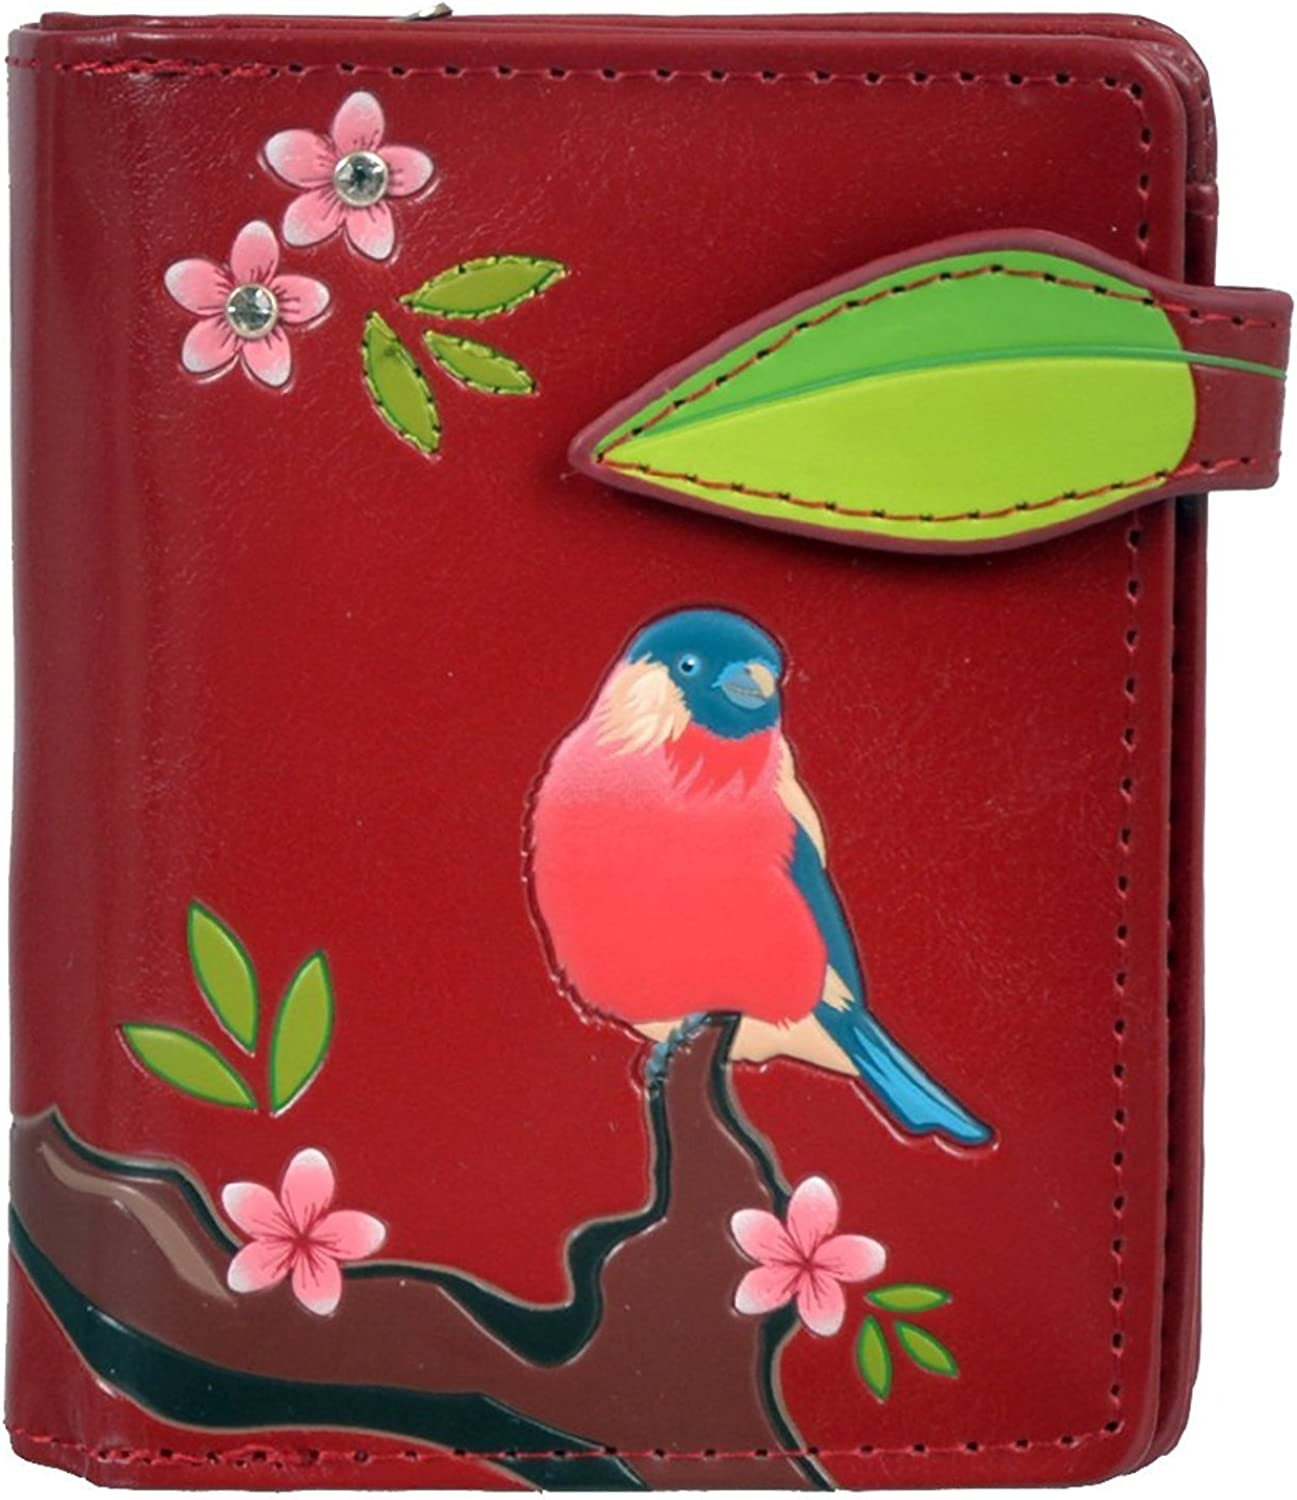 Shagwear Women's Small Zipper Wallet Red Chested Bird Red